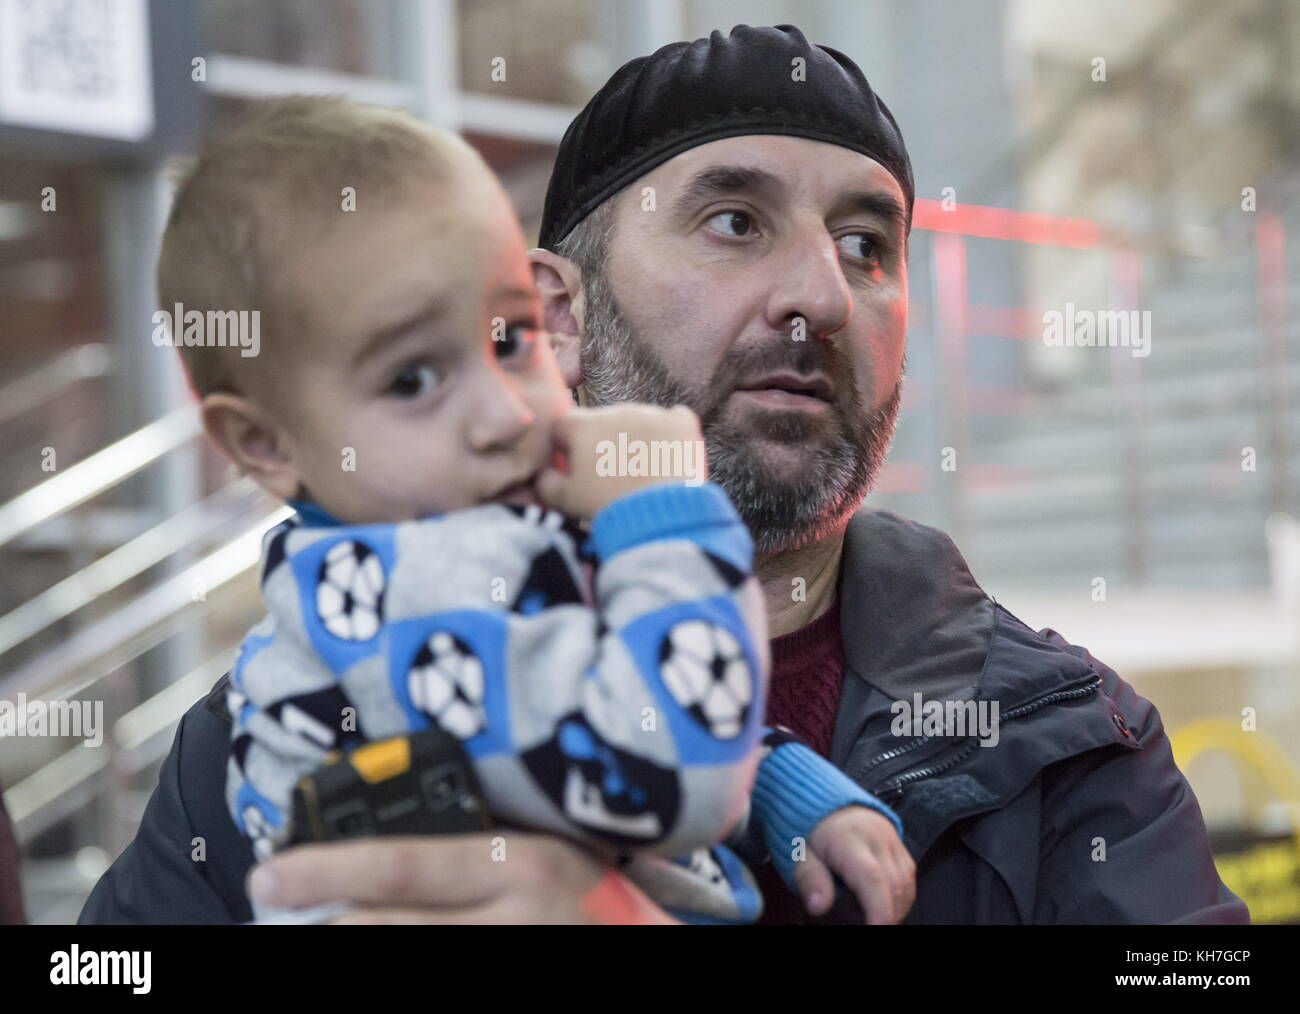 Grozny, Russia. 13th Nov, 2017. Commissioner for Children's Rights in the Chechen Republic, Khamzat Khirakhmatov, - Stock Image